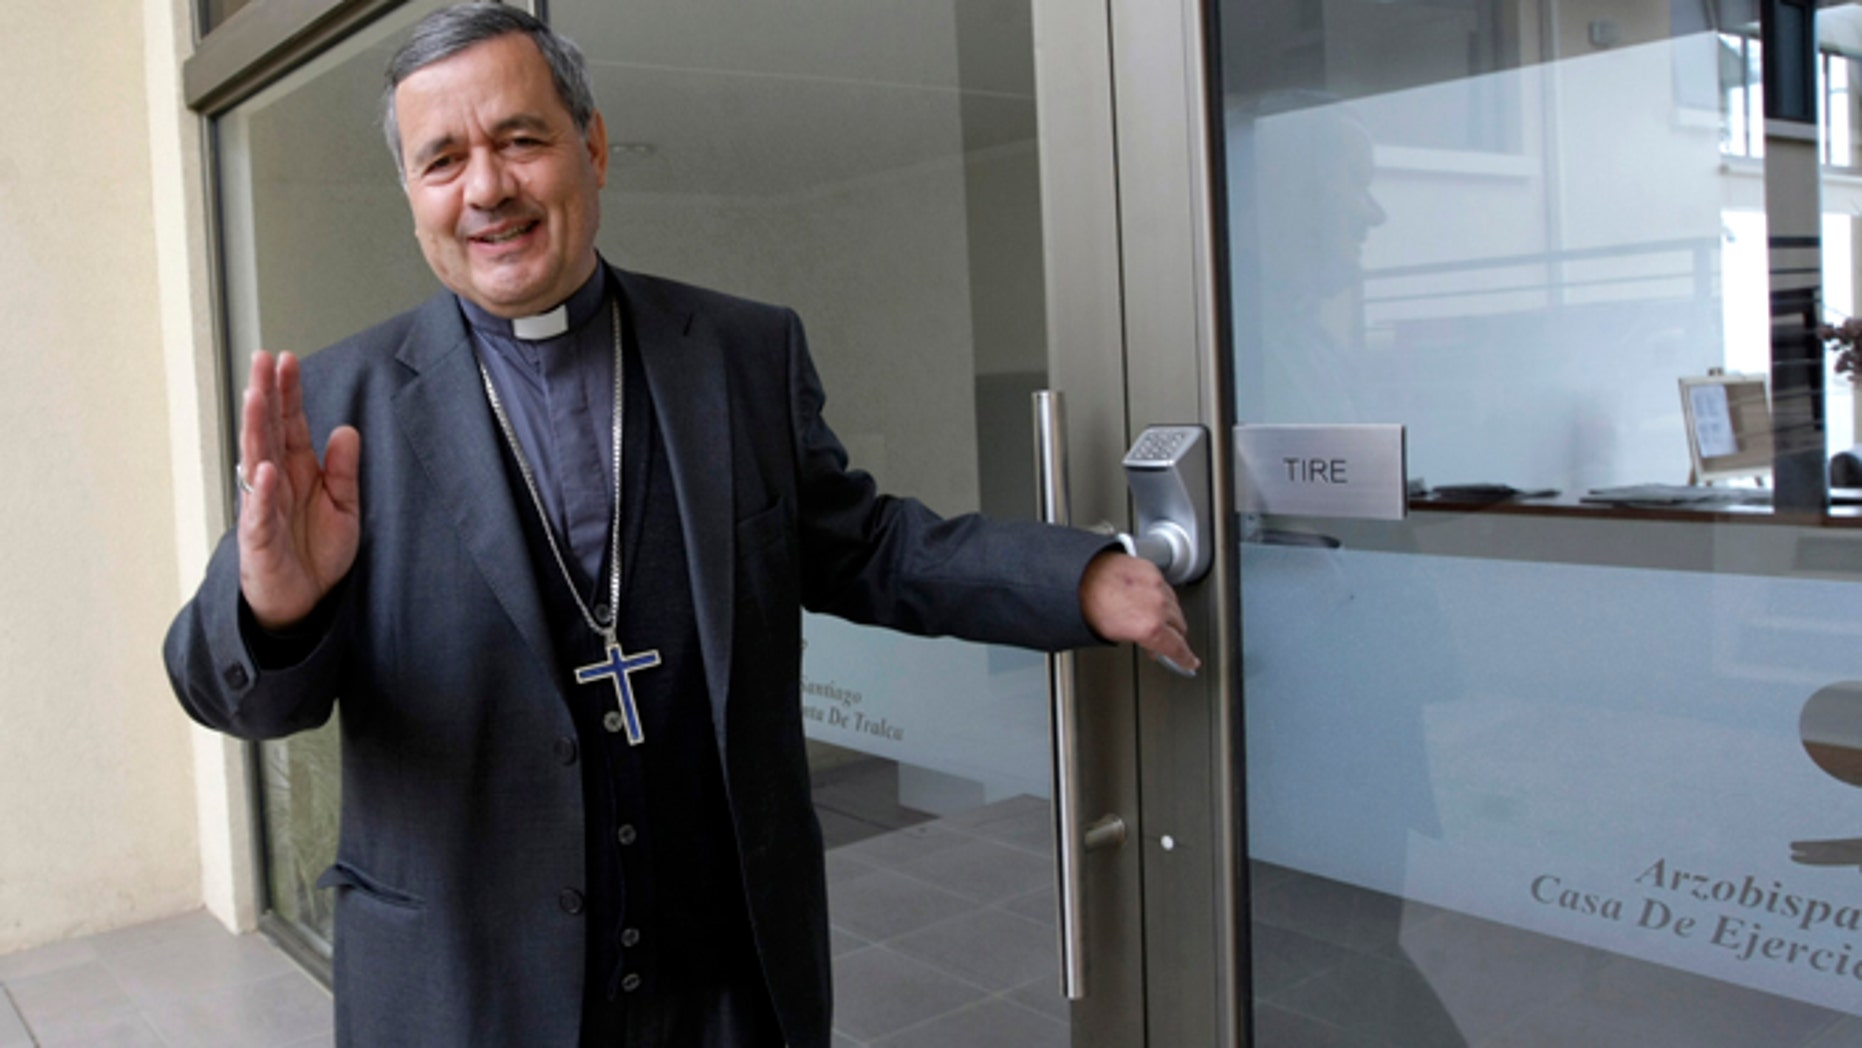 In this April 8, 2011 photo, Bishop Juan Barros arrives to the Episcopal Conference of Chile in El Quisco, Chile. Barros has been tapped by Pope Francis to become bishop of a southern Chilean diocese in March 2015, provoking an unprecedented outcry by abuse victims and Catholic faithful who contend he covered up sexual abuse committed by his mentor and superior, Rev. Fernando Karadima, in the 1980s and 90s. Barros has declined to comment publicly on allegations against him. (AP Photo/La Tercera)